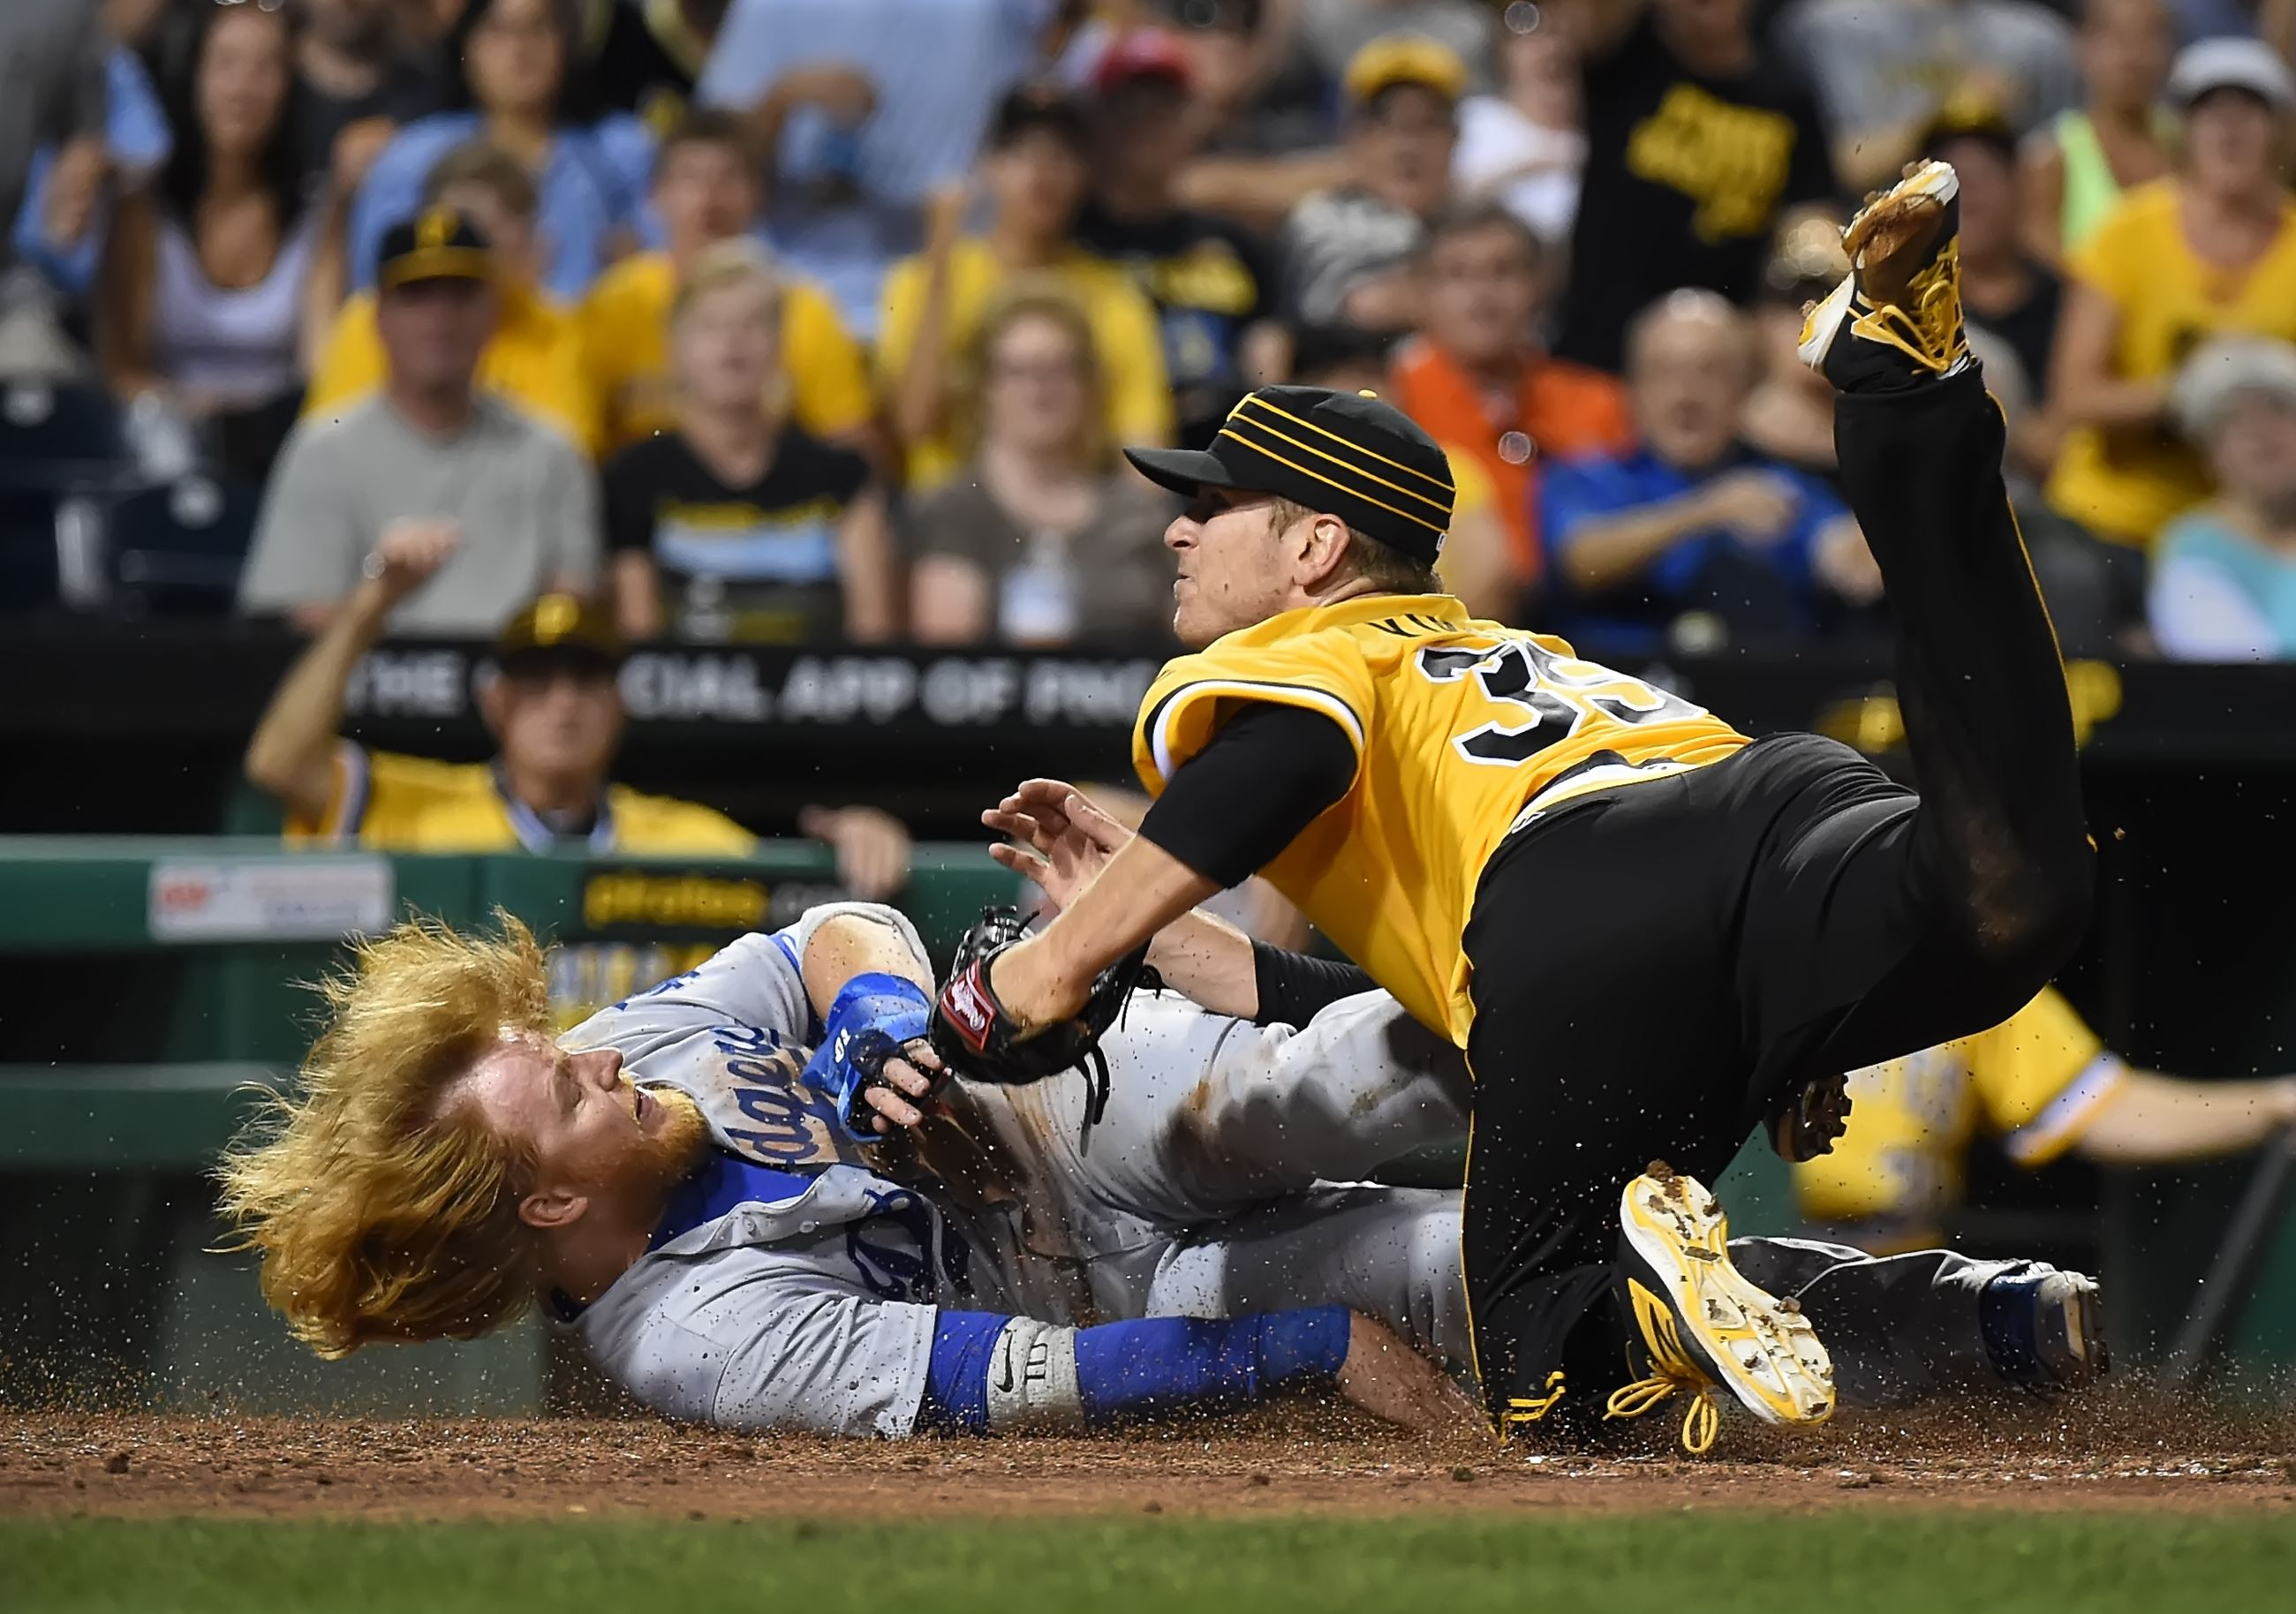 Freese, Frazier get to Kershaw as Pirates win Kuhl's debut, 4-3